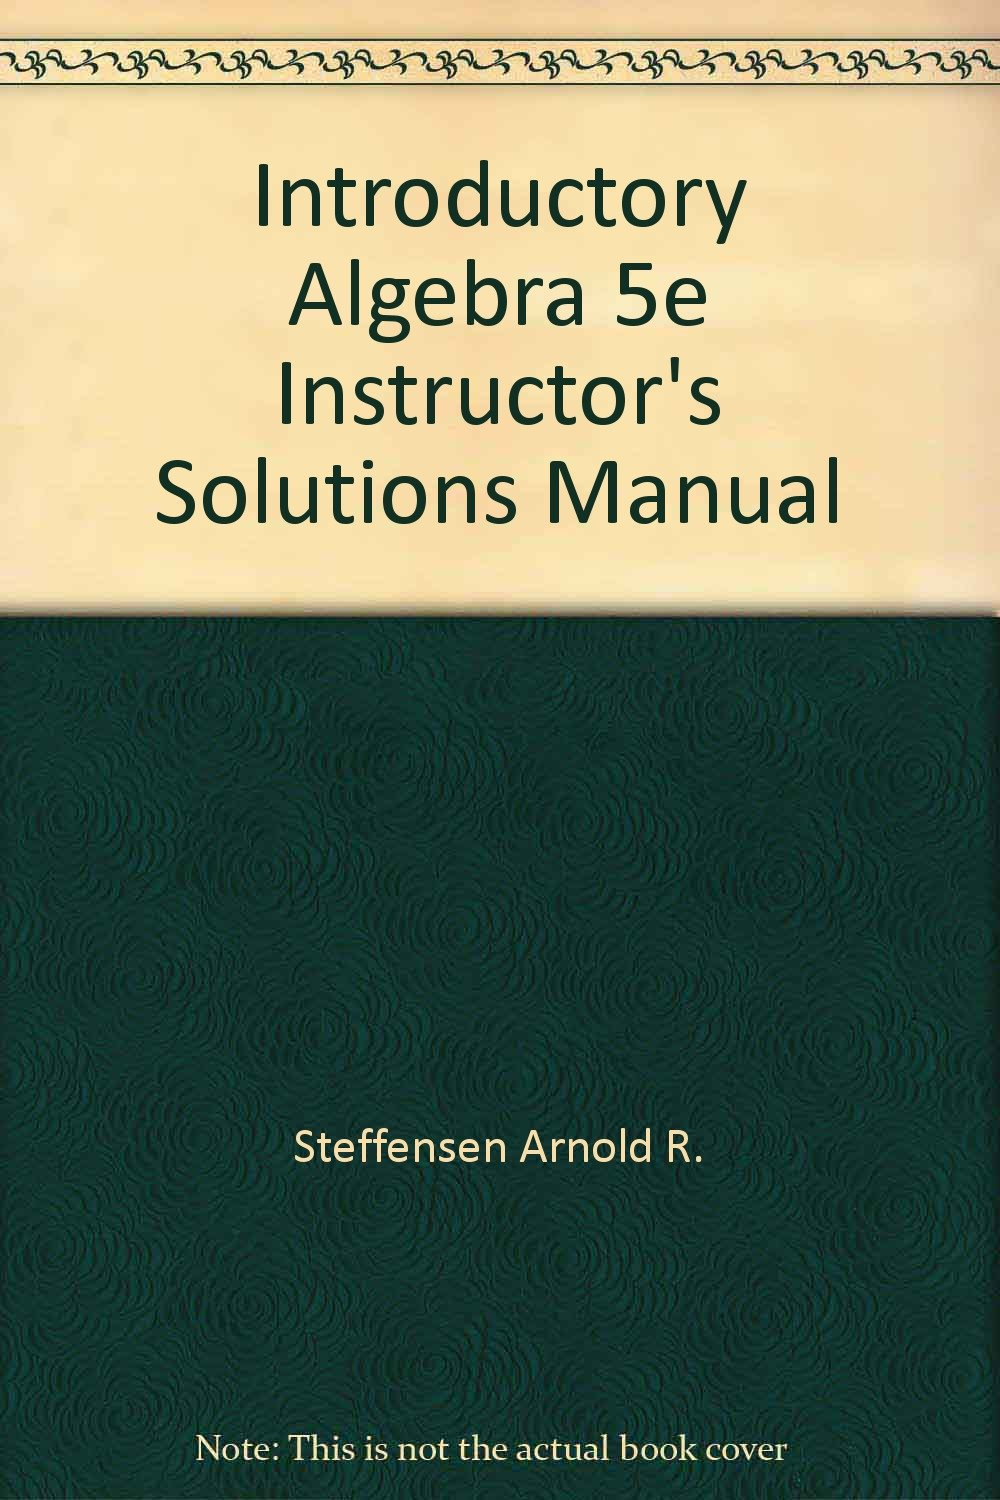 Introductory Algebra 5e Instructor's Solutions Manual: Arnold R.  Steffensen: 9780673553928: Amazon.com: Books